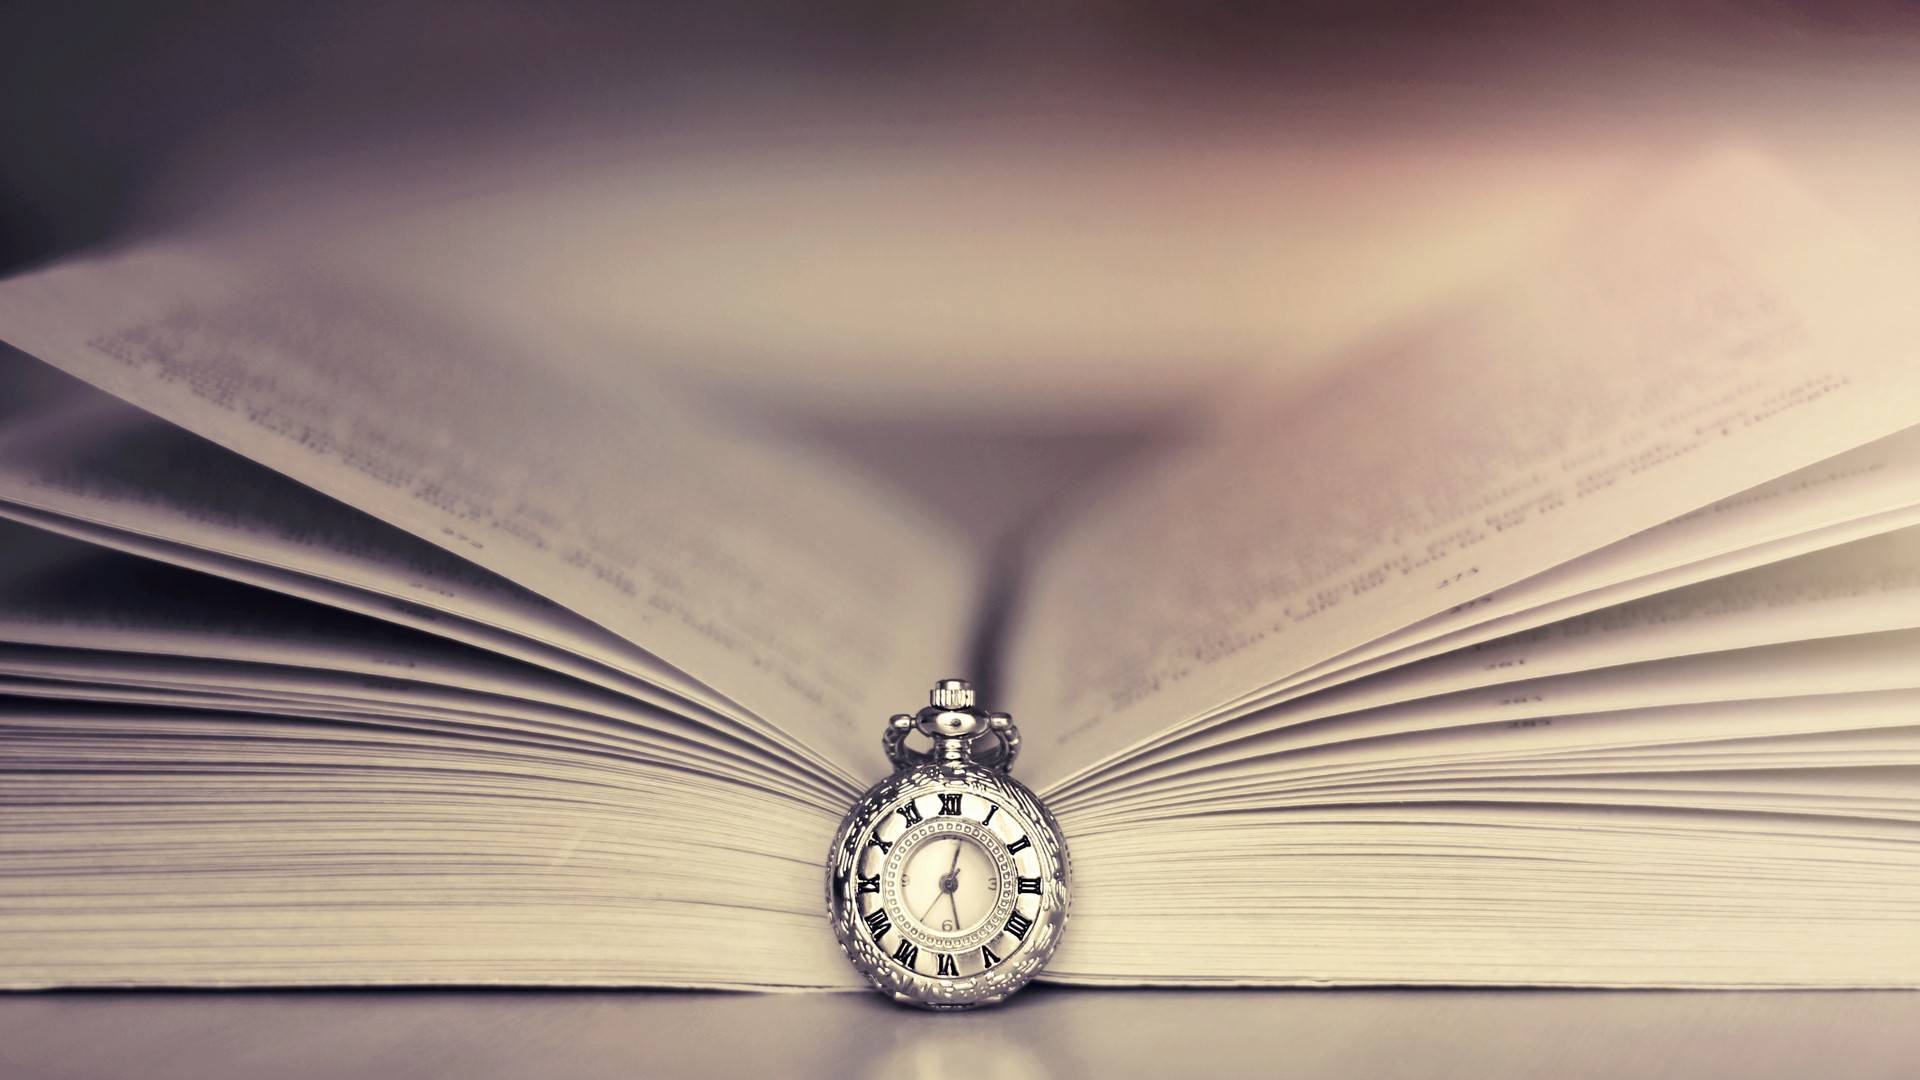 Clocks Books 1920×1080 Wallpaper 2404154 1169